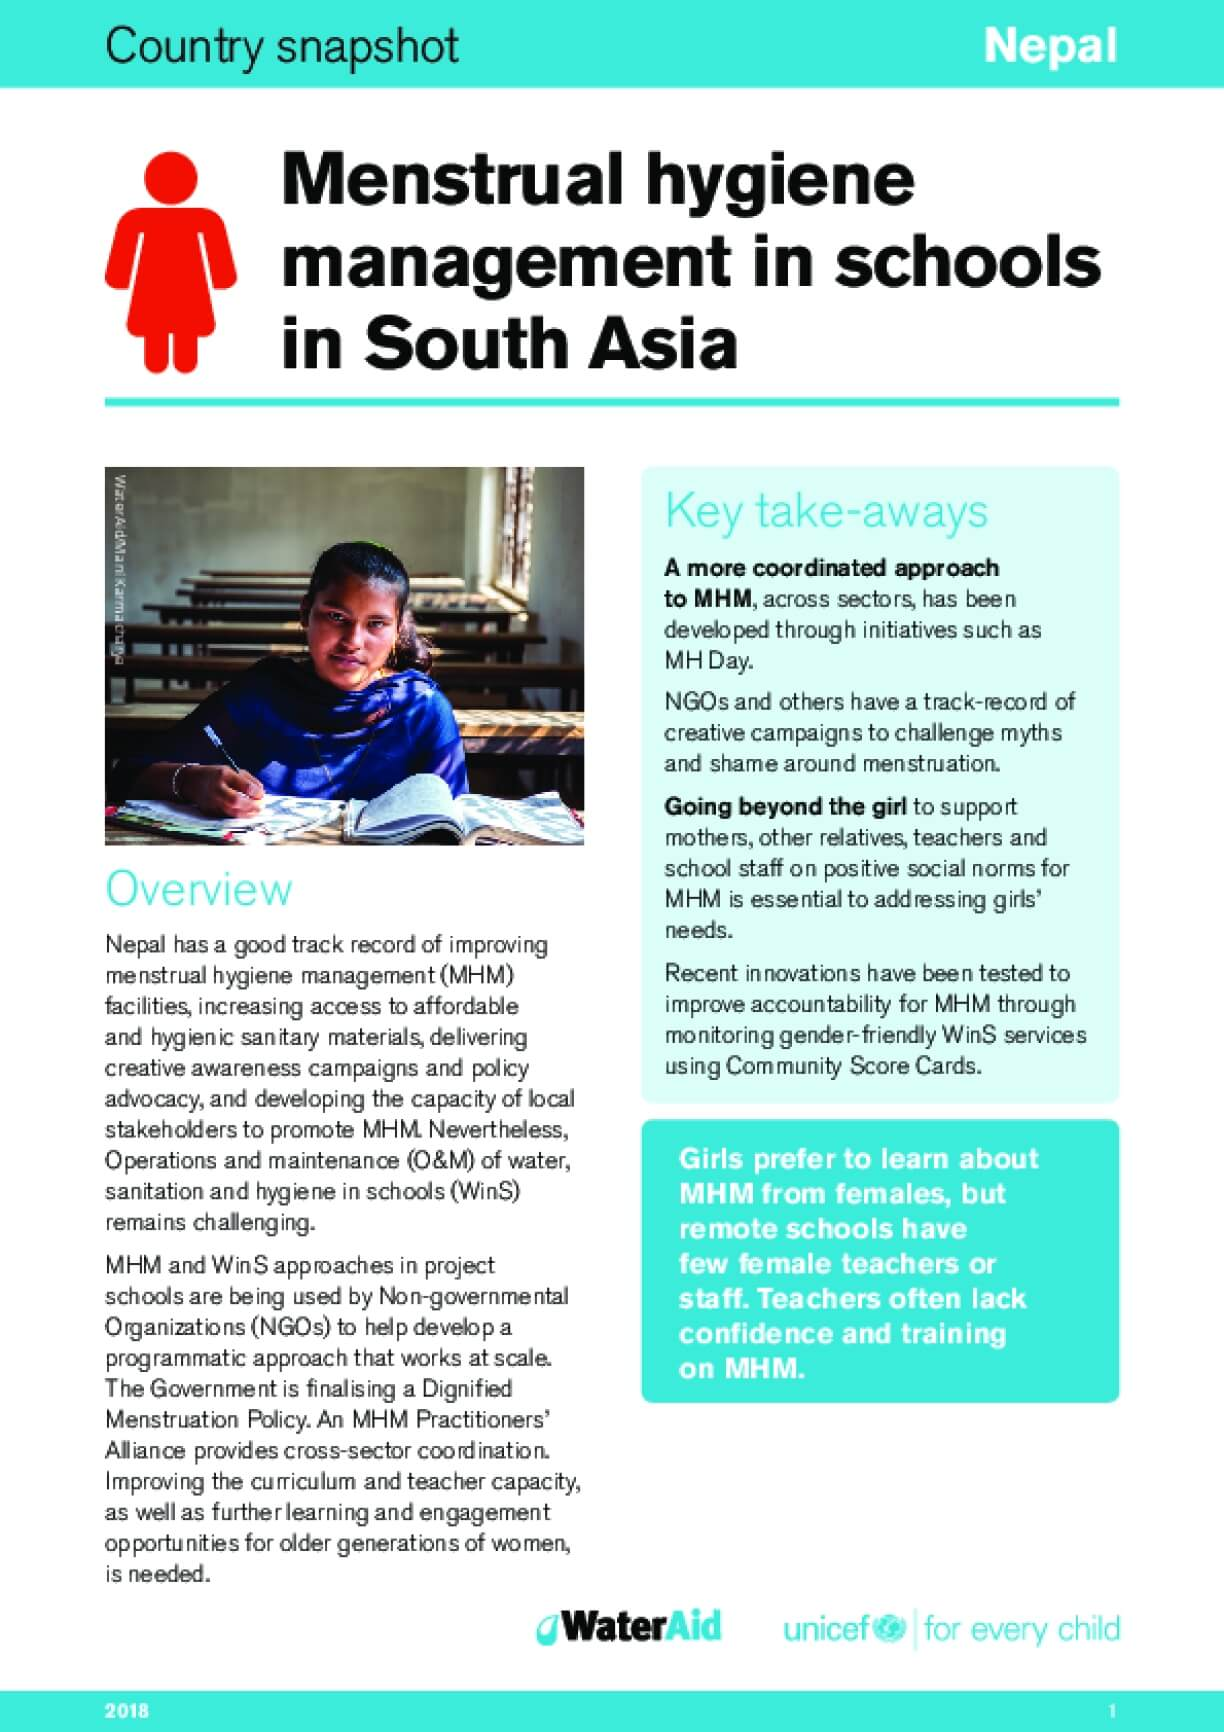 Menstrual hygiene management in schools in South Asia: Nepal